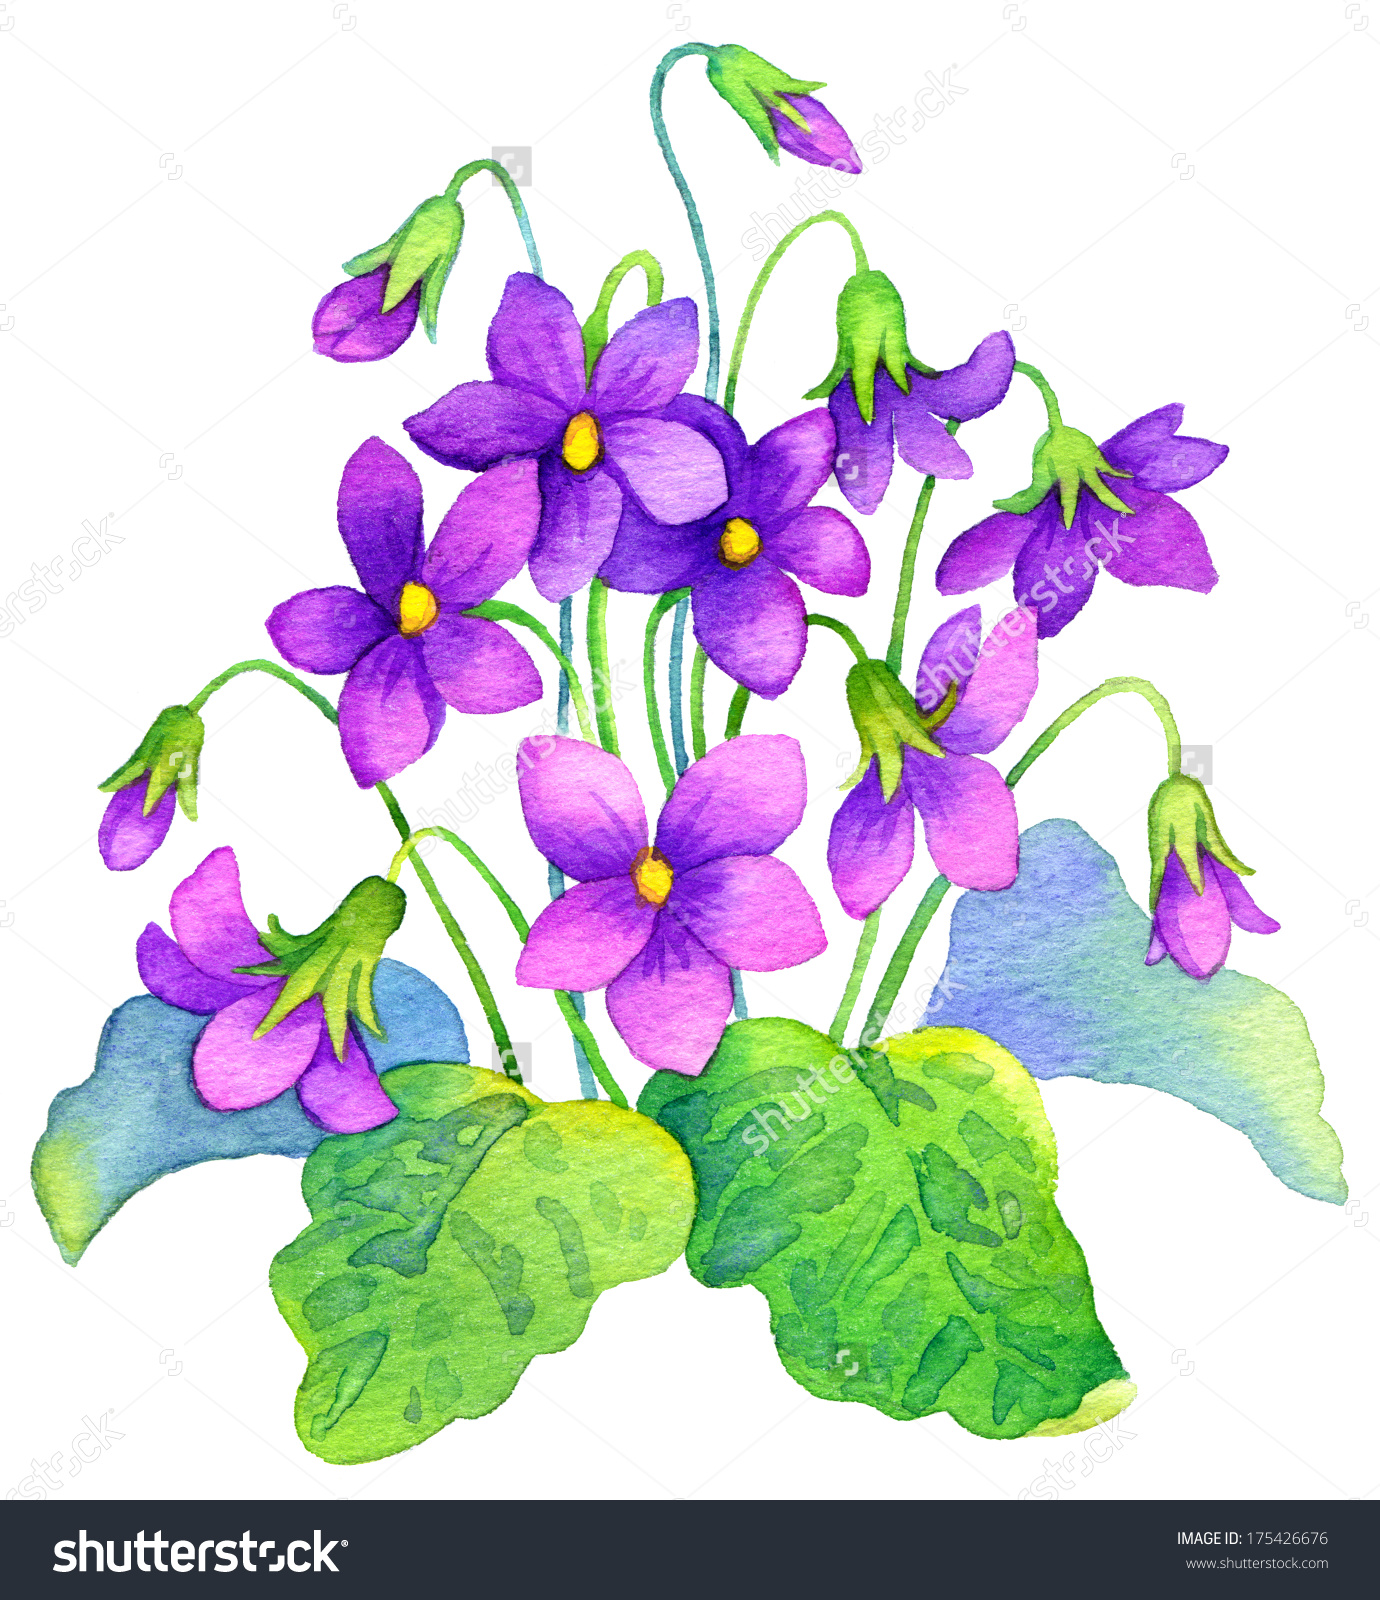 Watercolor Painting Bright Purple Flowers Lush Stock Illustration.